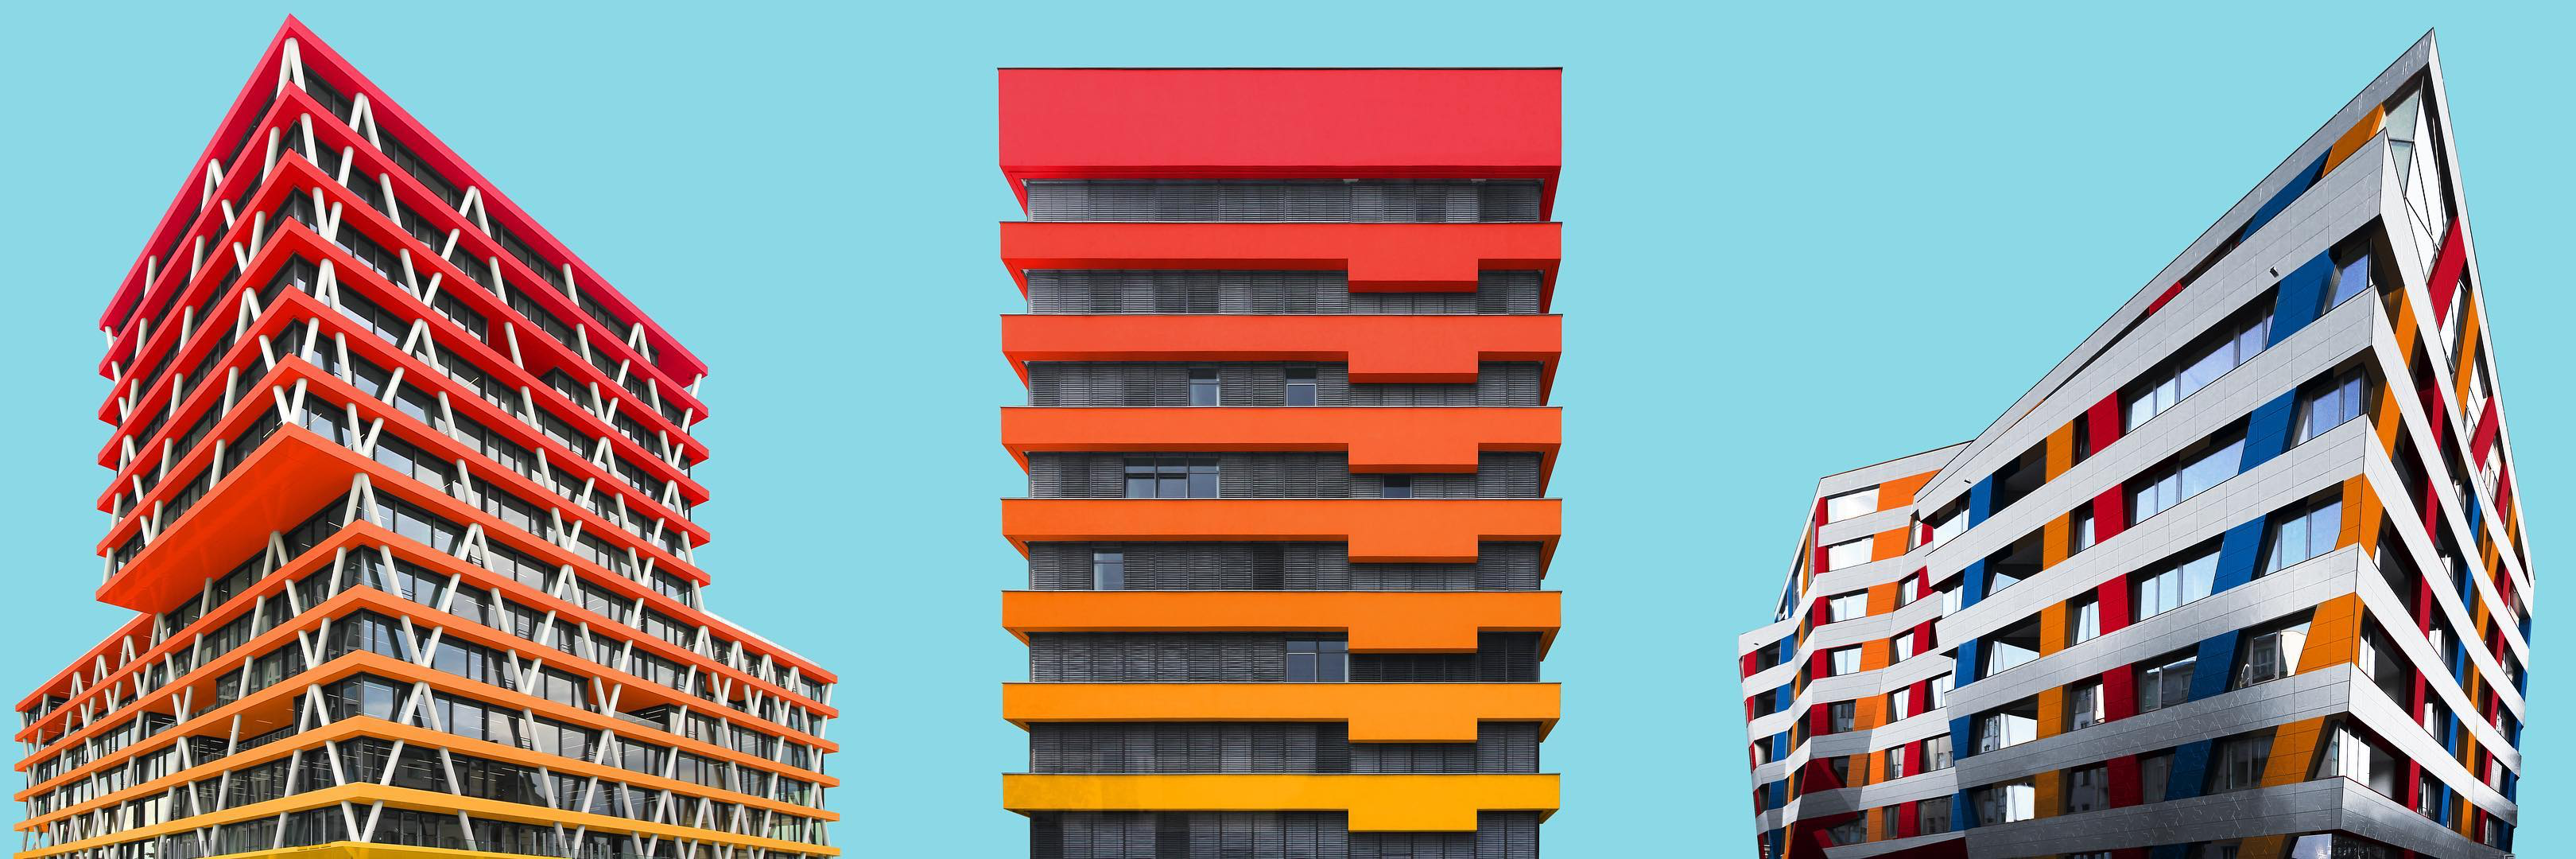 The Perception of Color in Architecture - TMD STUDIO's Insights ...